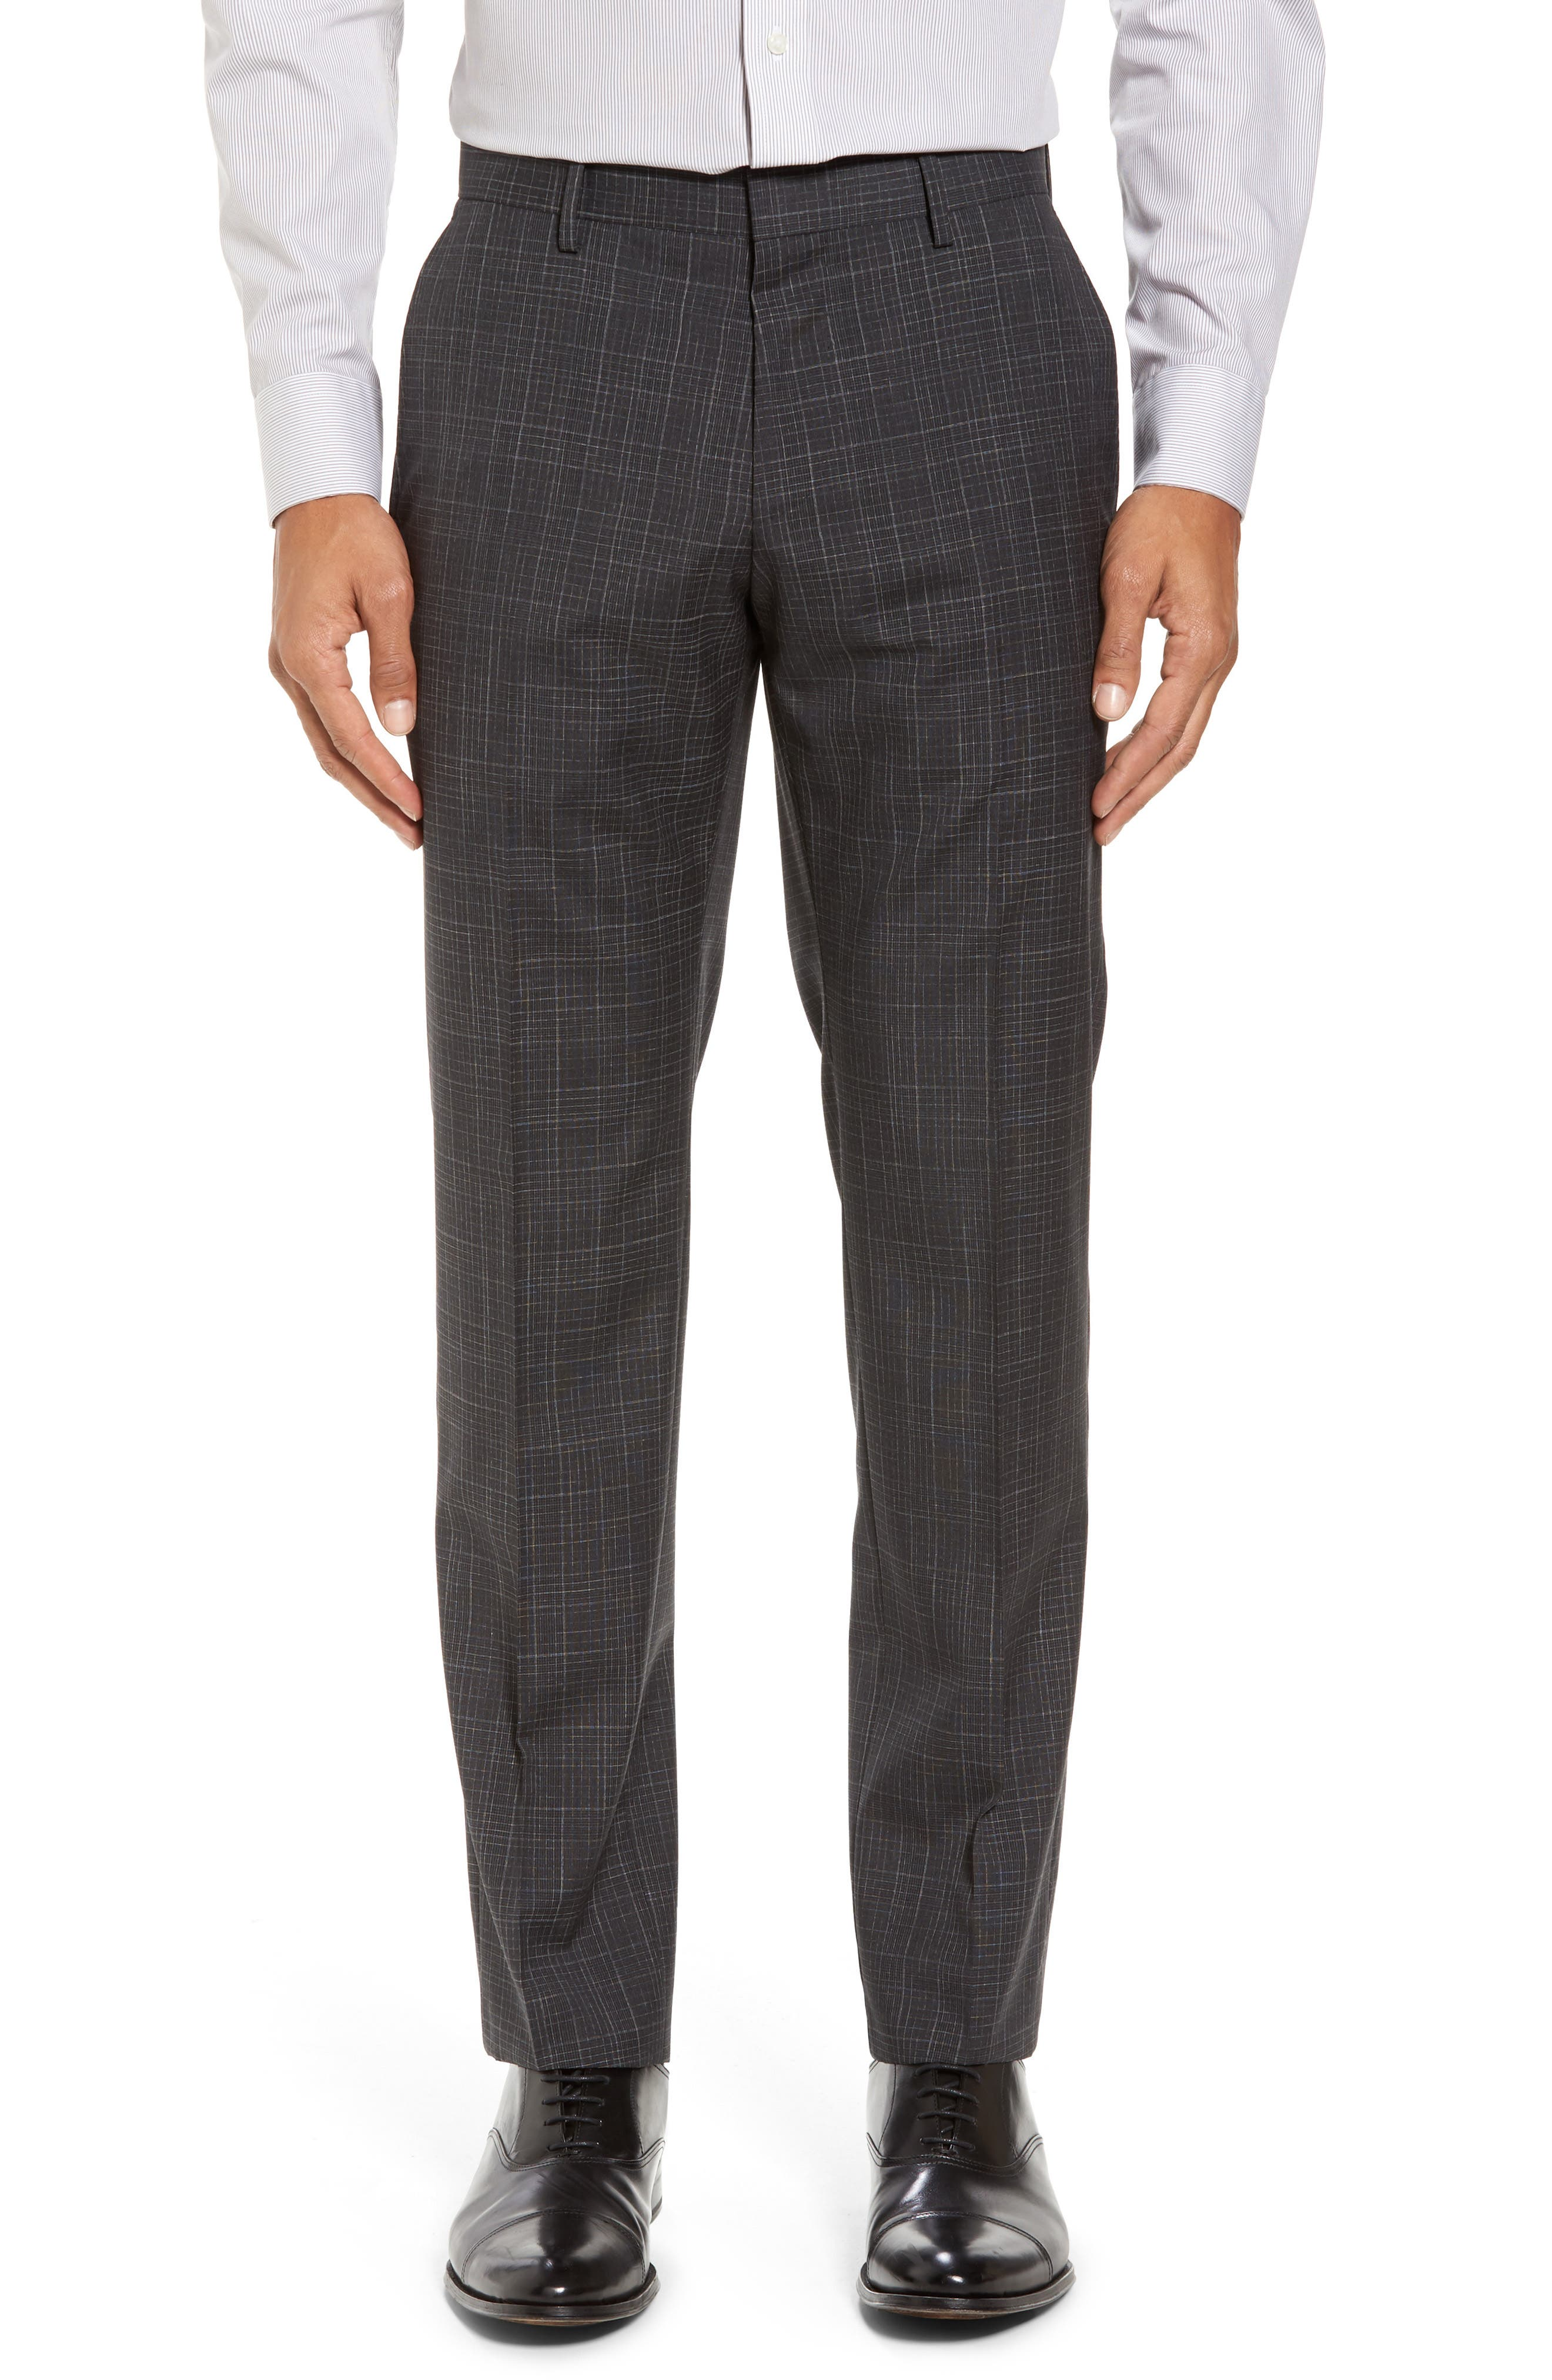 Hutson/Gander Trim Fit Plaid Wool Suit,                             Alternate thumbnail 6, color,                             Open Grey